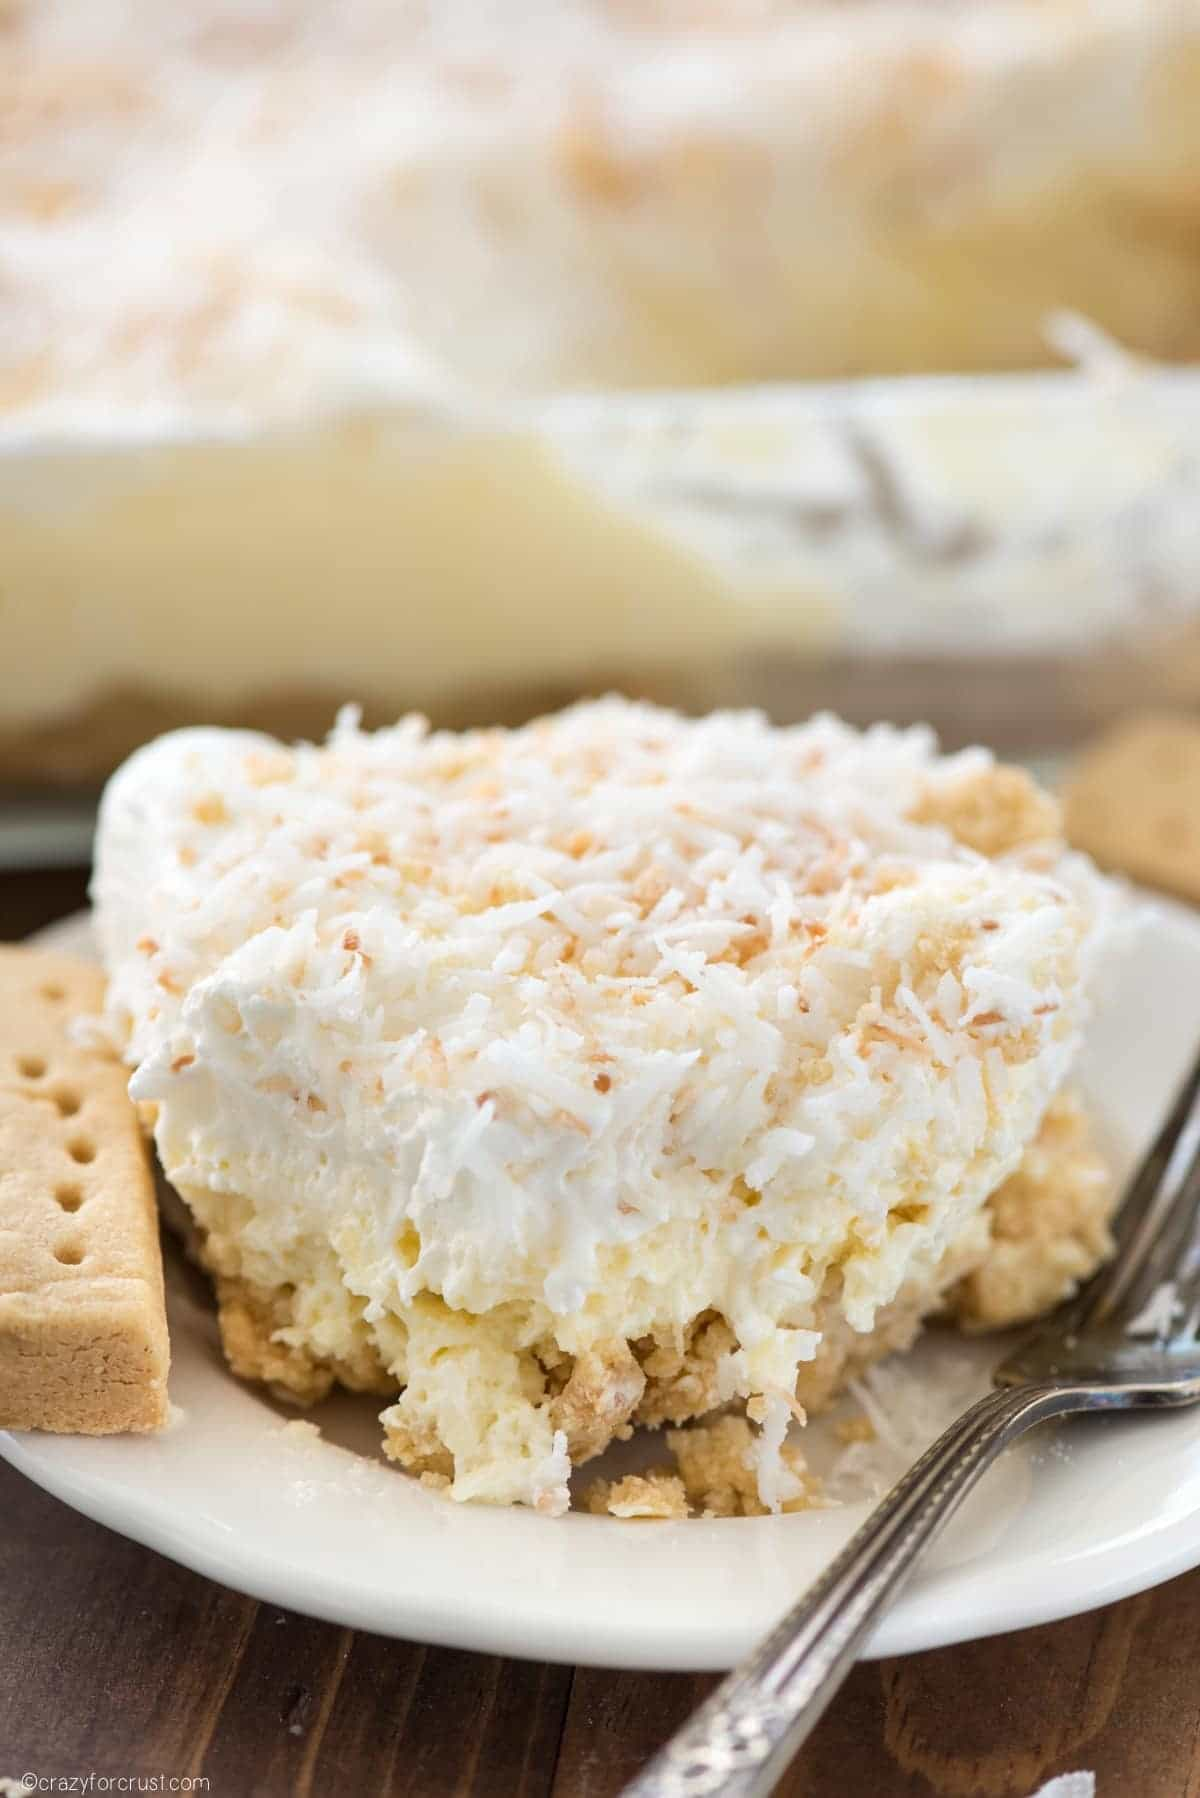 Coconut Cheesecake No Bake Dessert (8 of 8)w